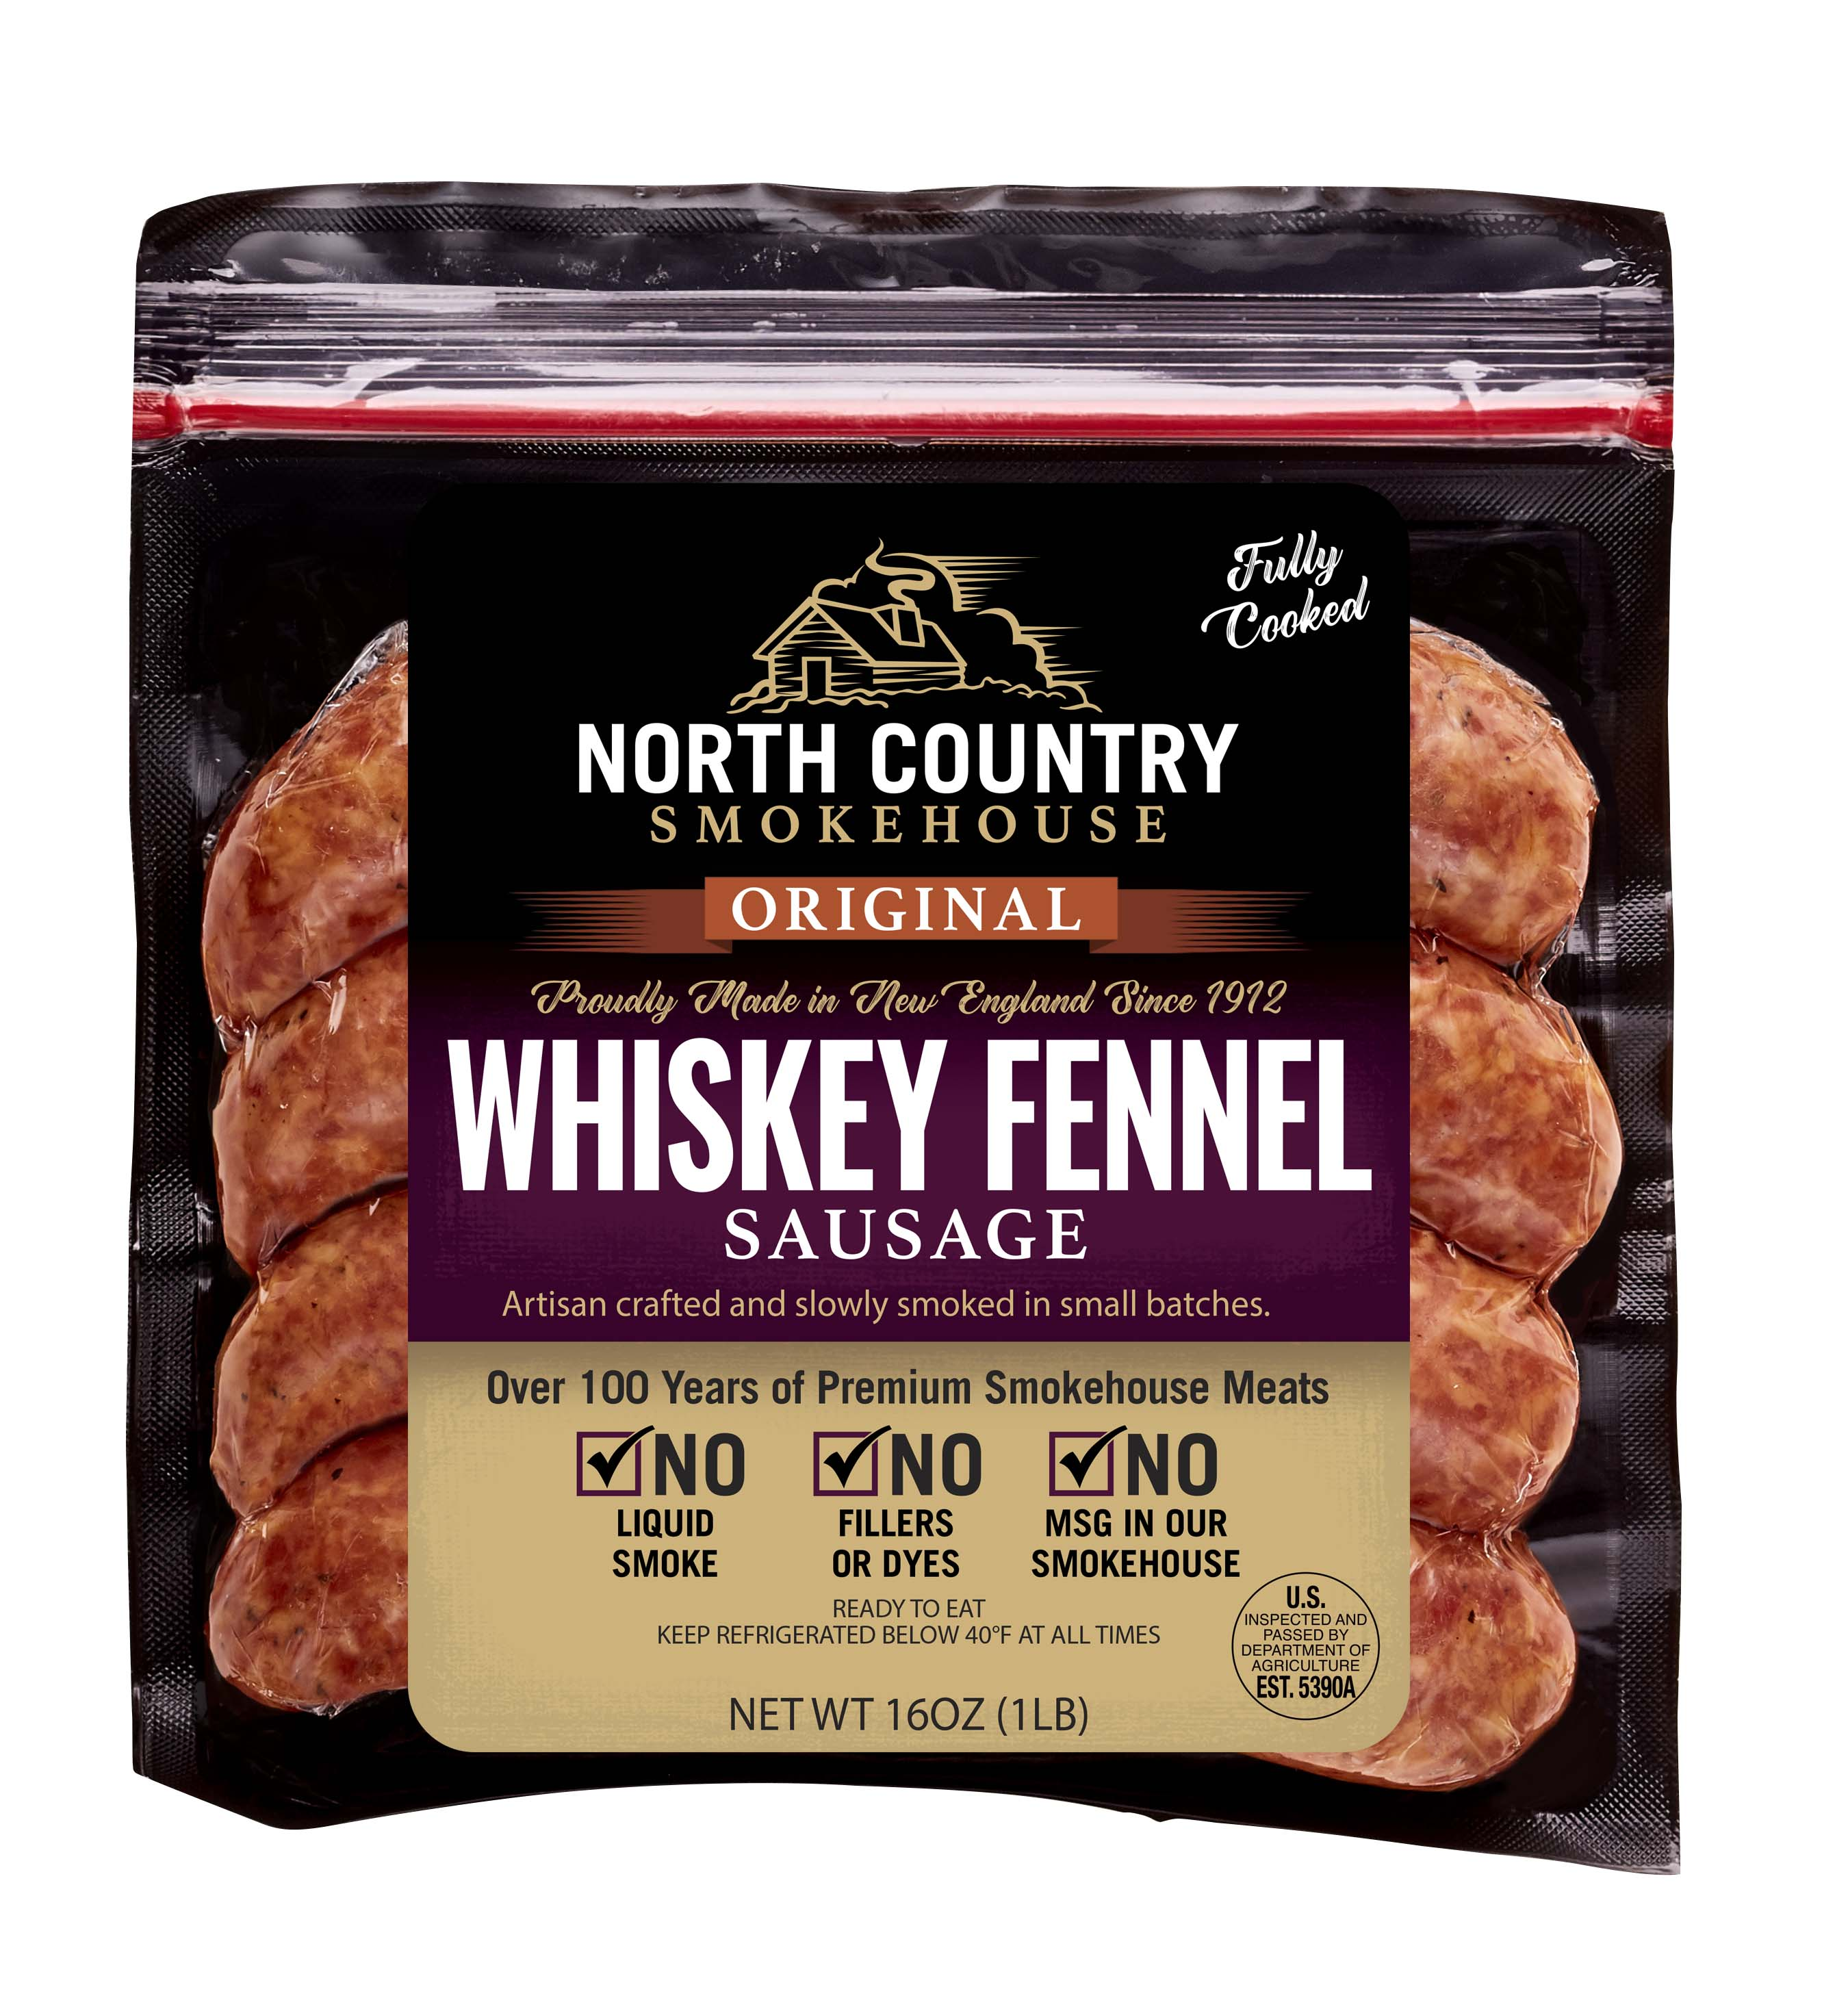 Original Whiskey Fennel Sausage - 3, 1 lb. packages